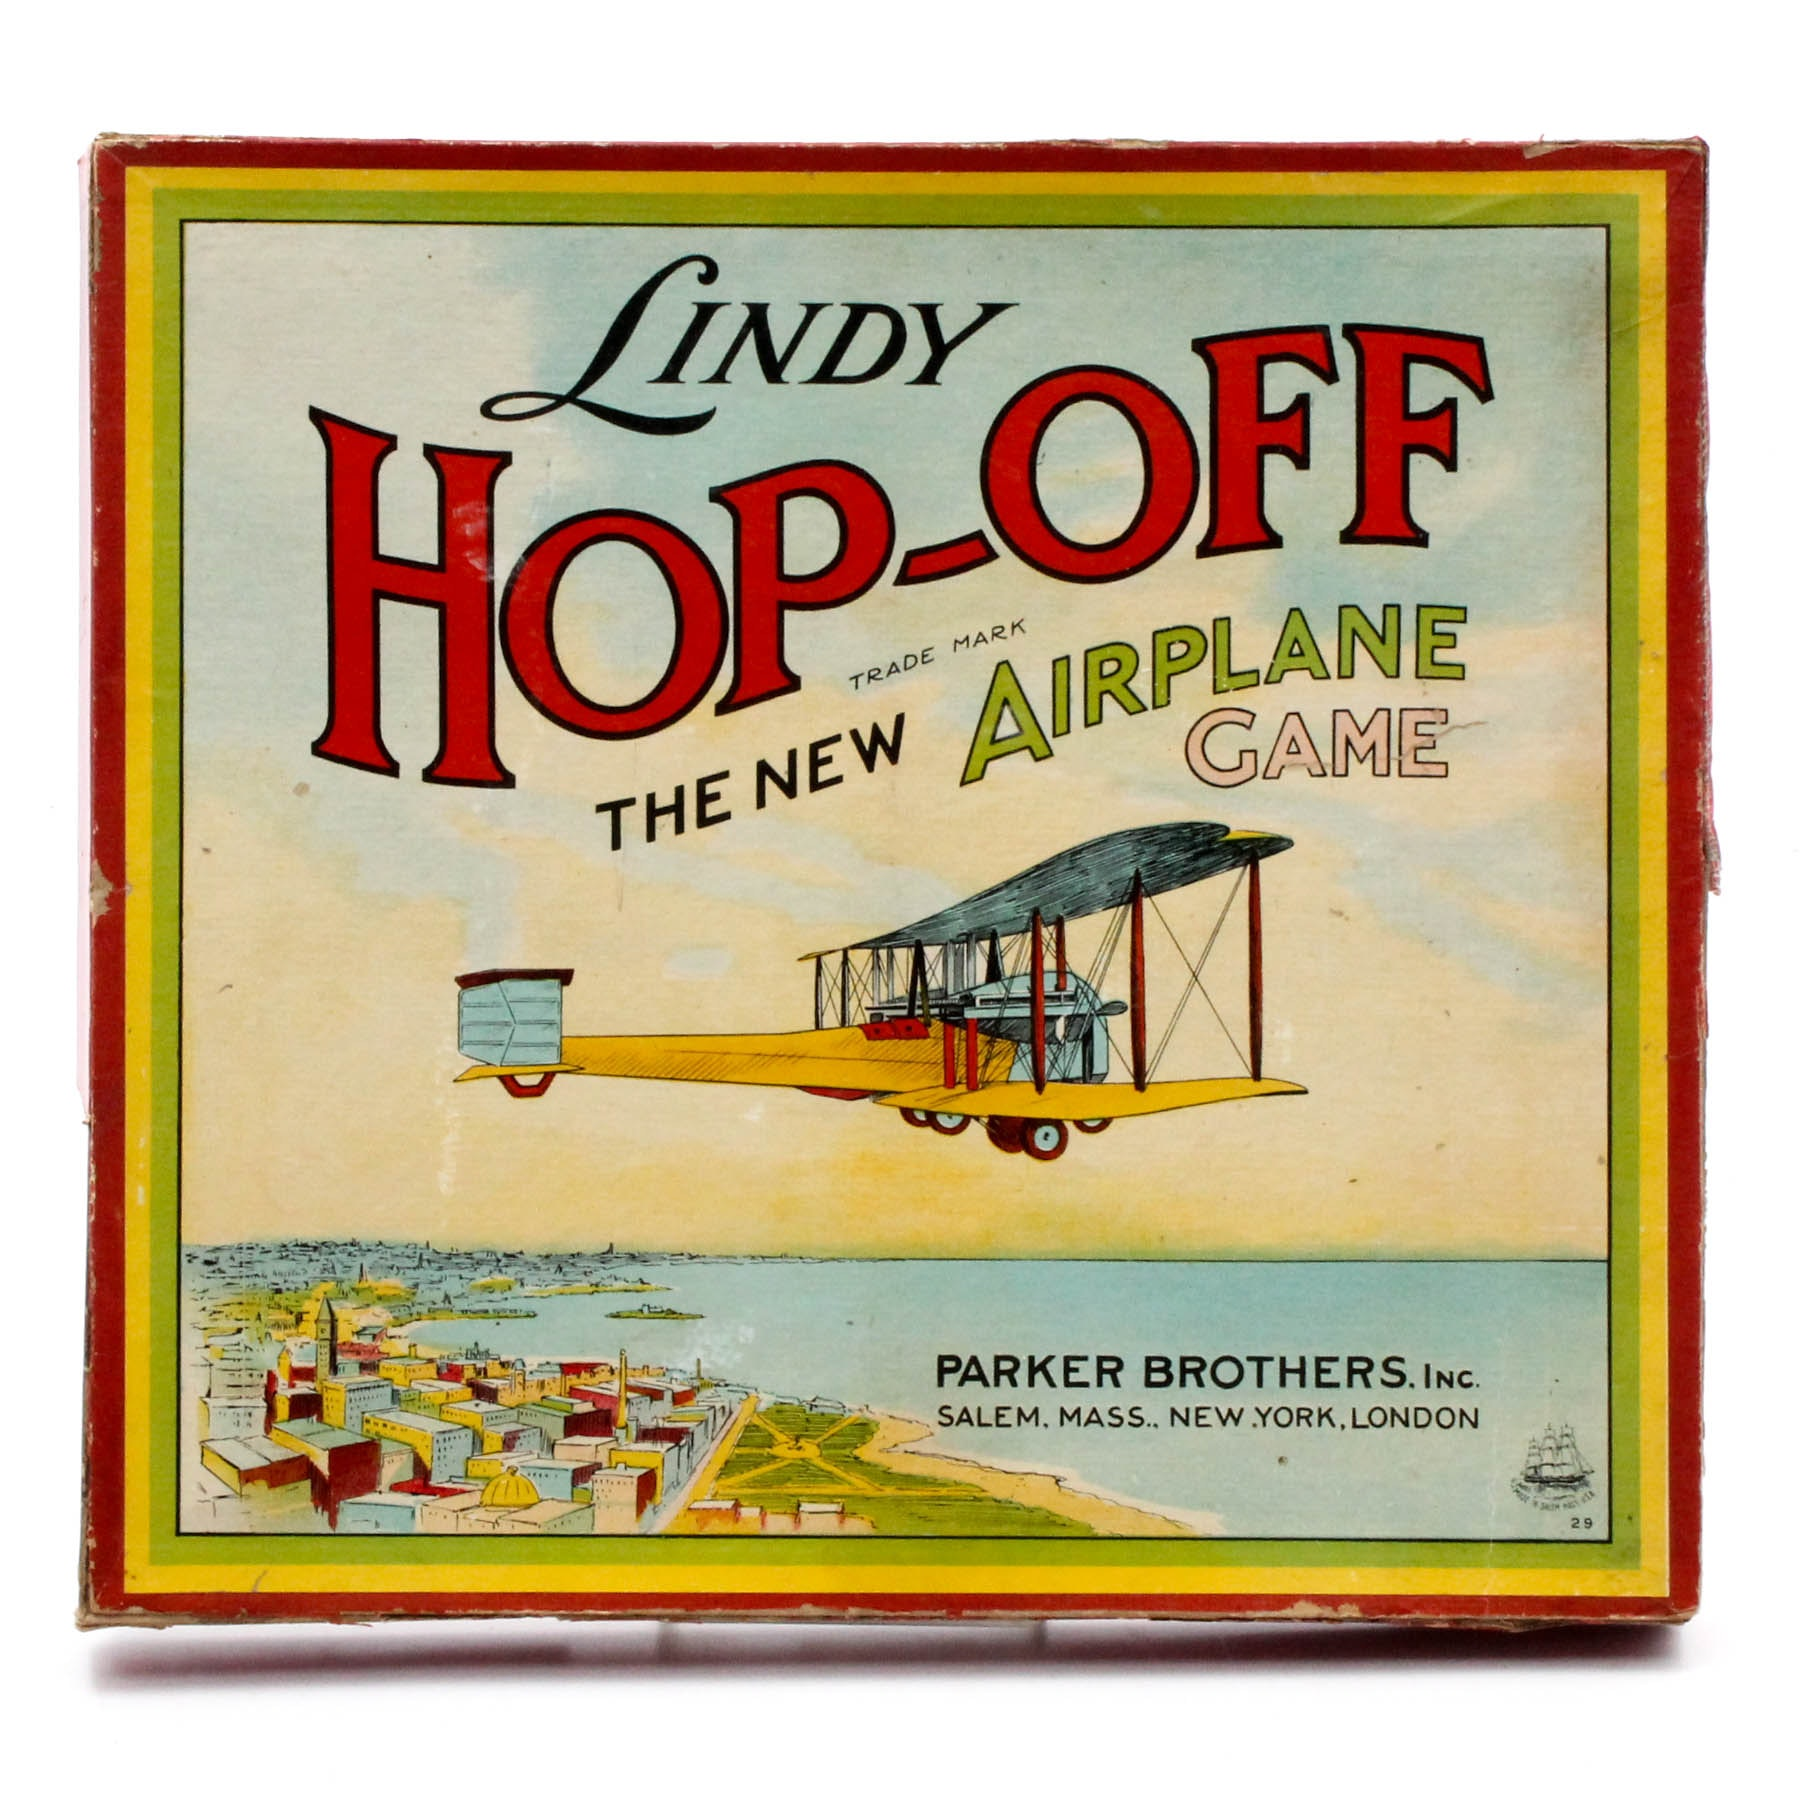 "1927 Charles Lindbergh ""Lindy Hop-Off: The New Airplane Game"" Board Game"